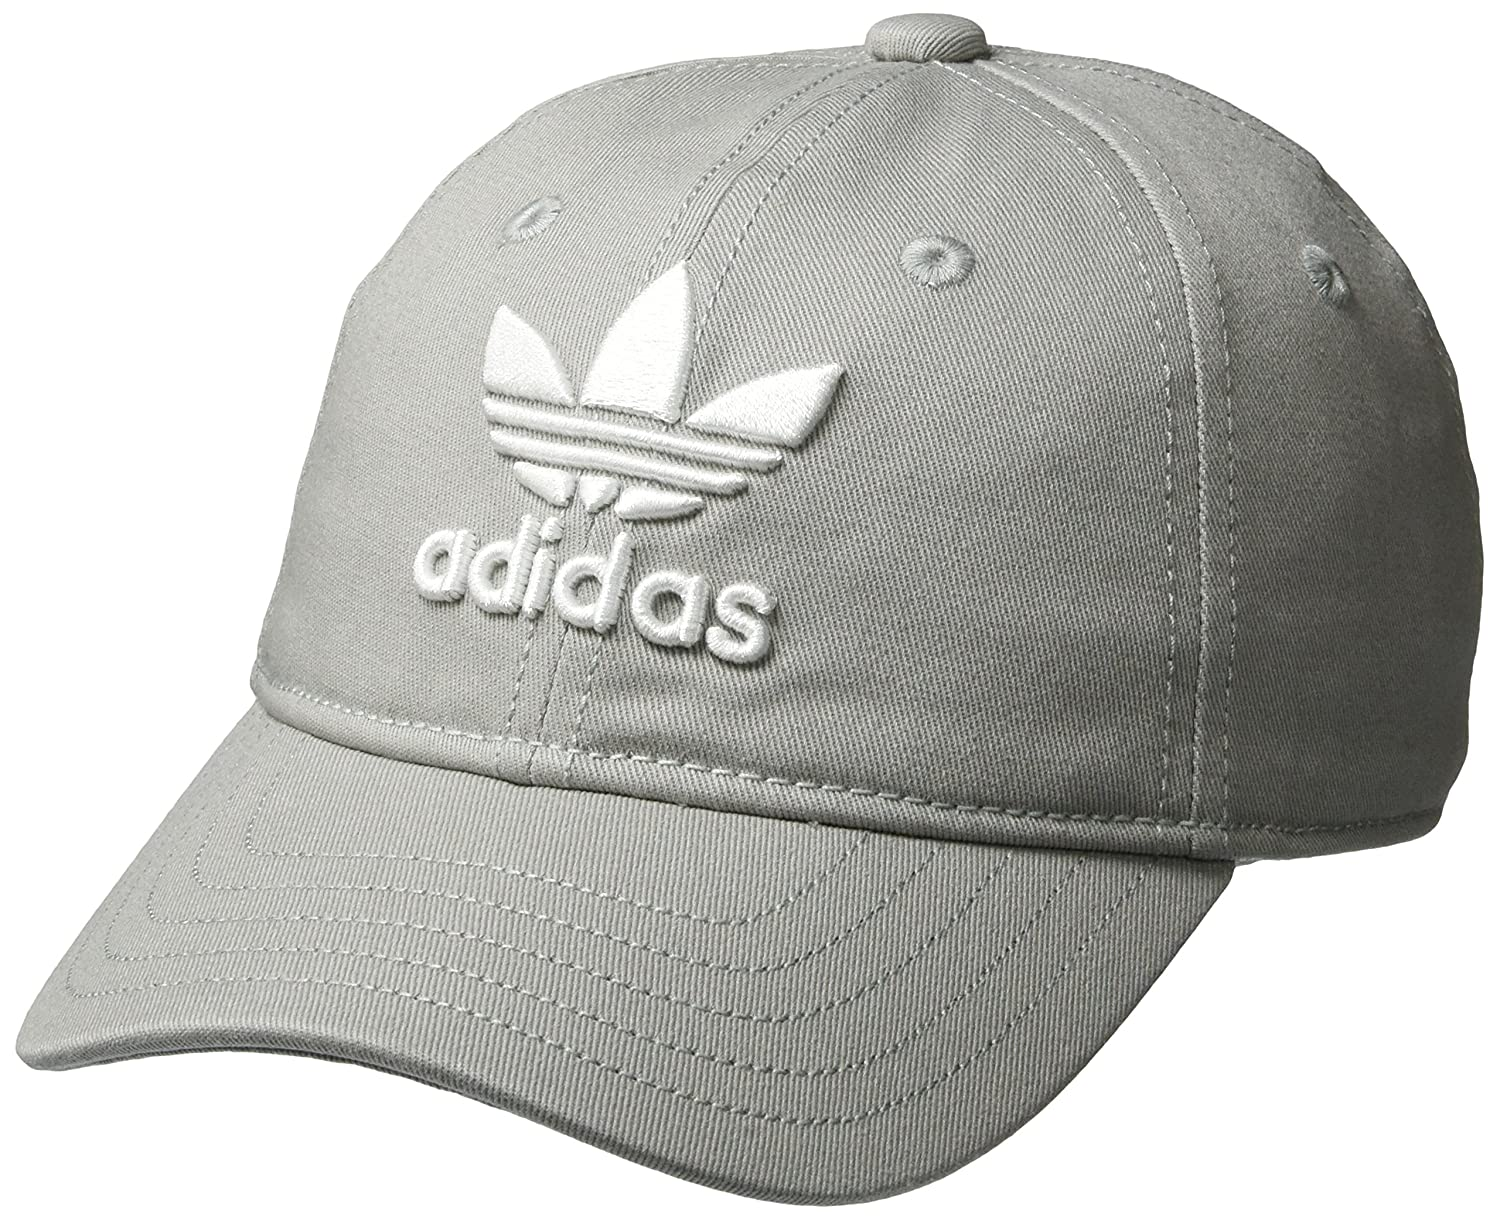 Adidas TREFOIL CAP NGTCAR/WHITE Verde Unica at Amazon Mens Clothing store: